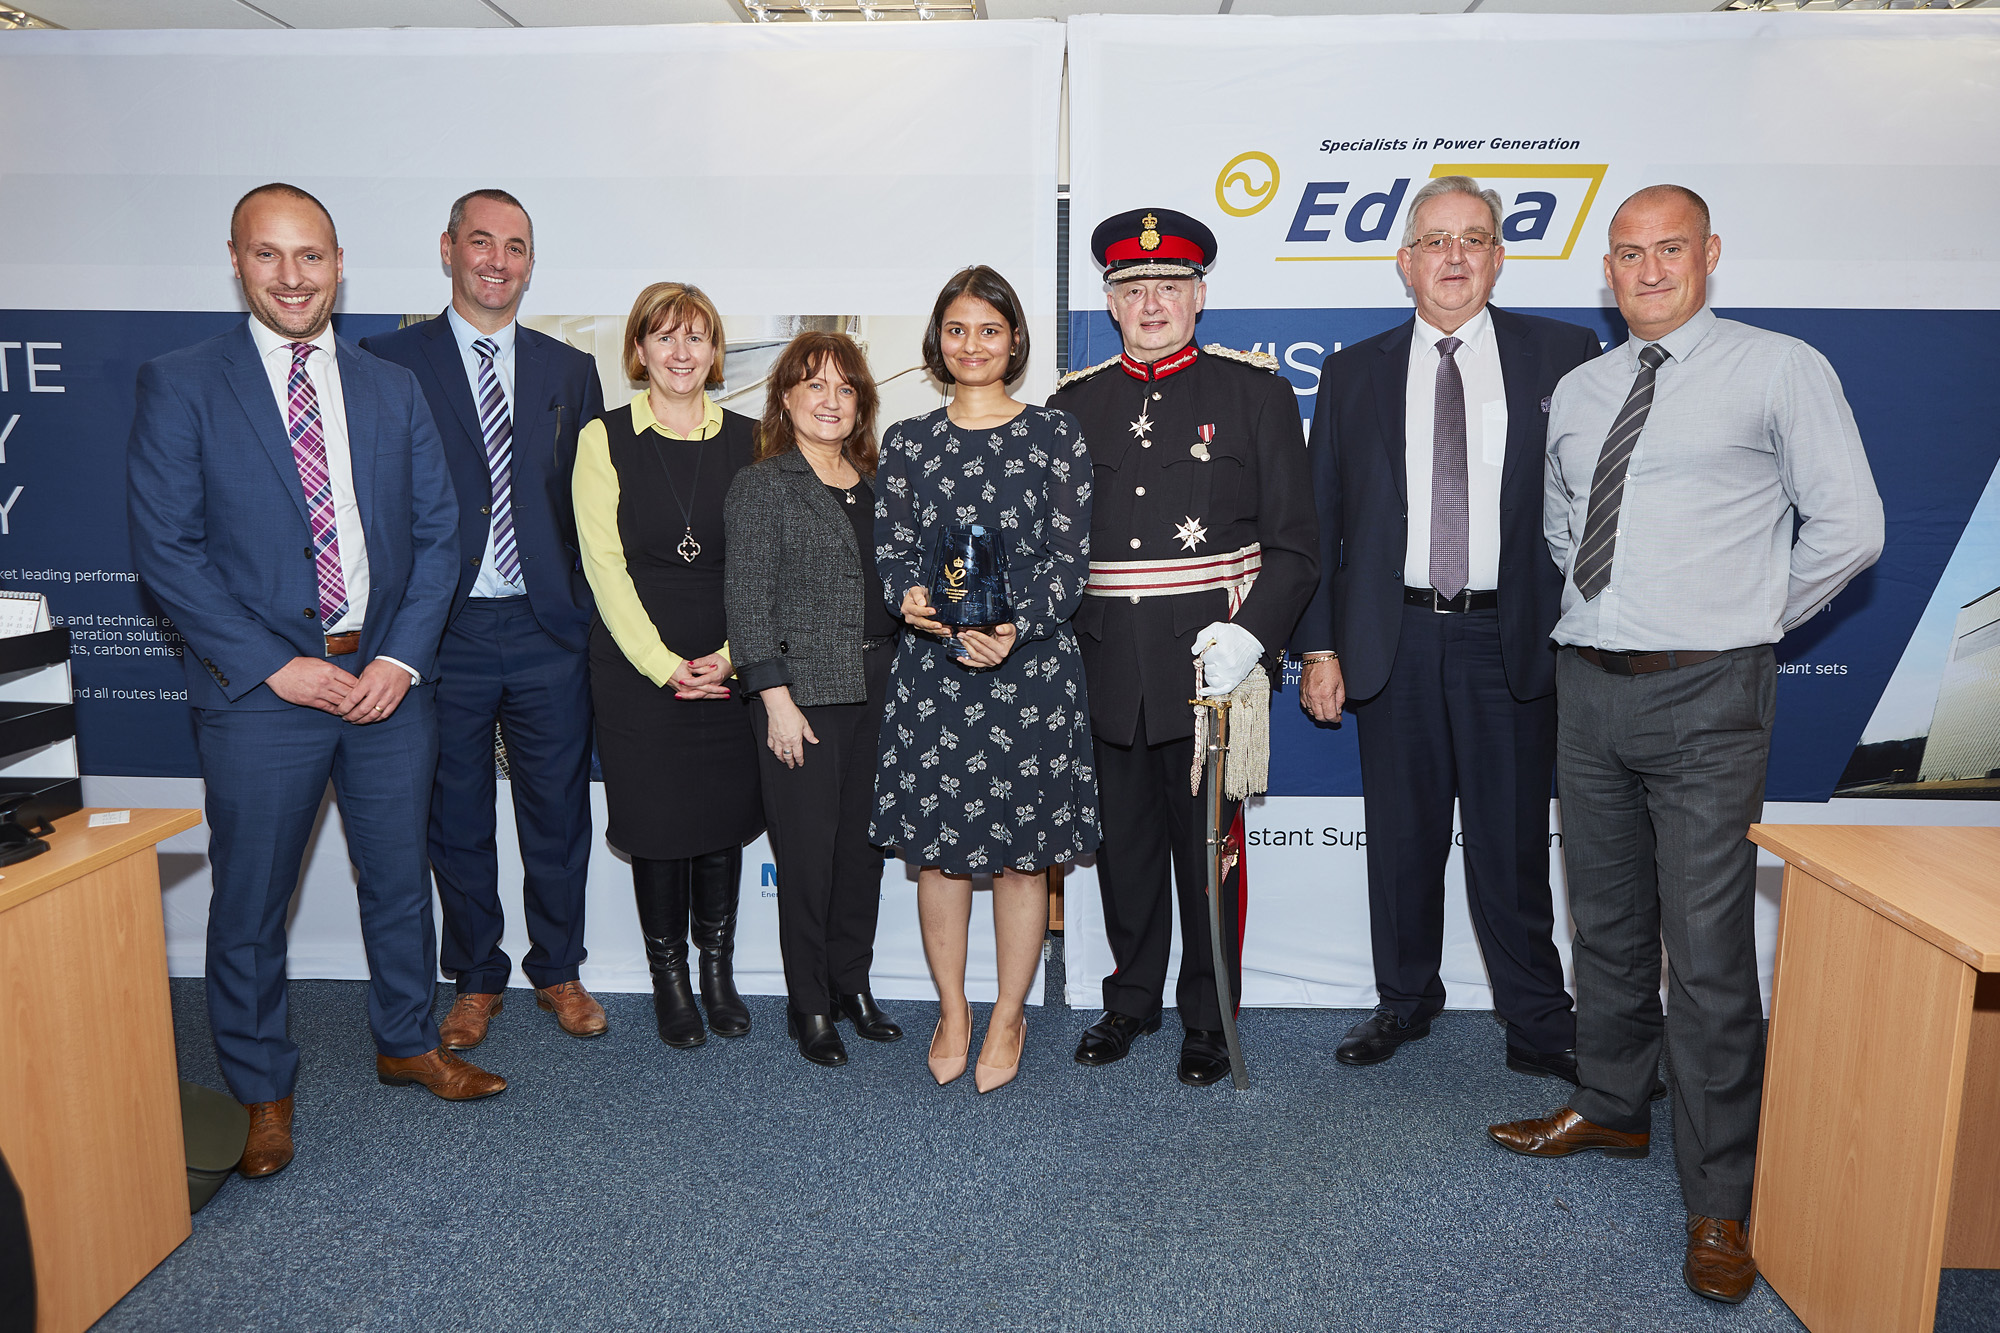 MEMBER'S PRESS RELEASE: People Power Brings Home Edina's Second Queen's Awards For Enterprise